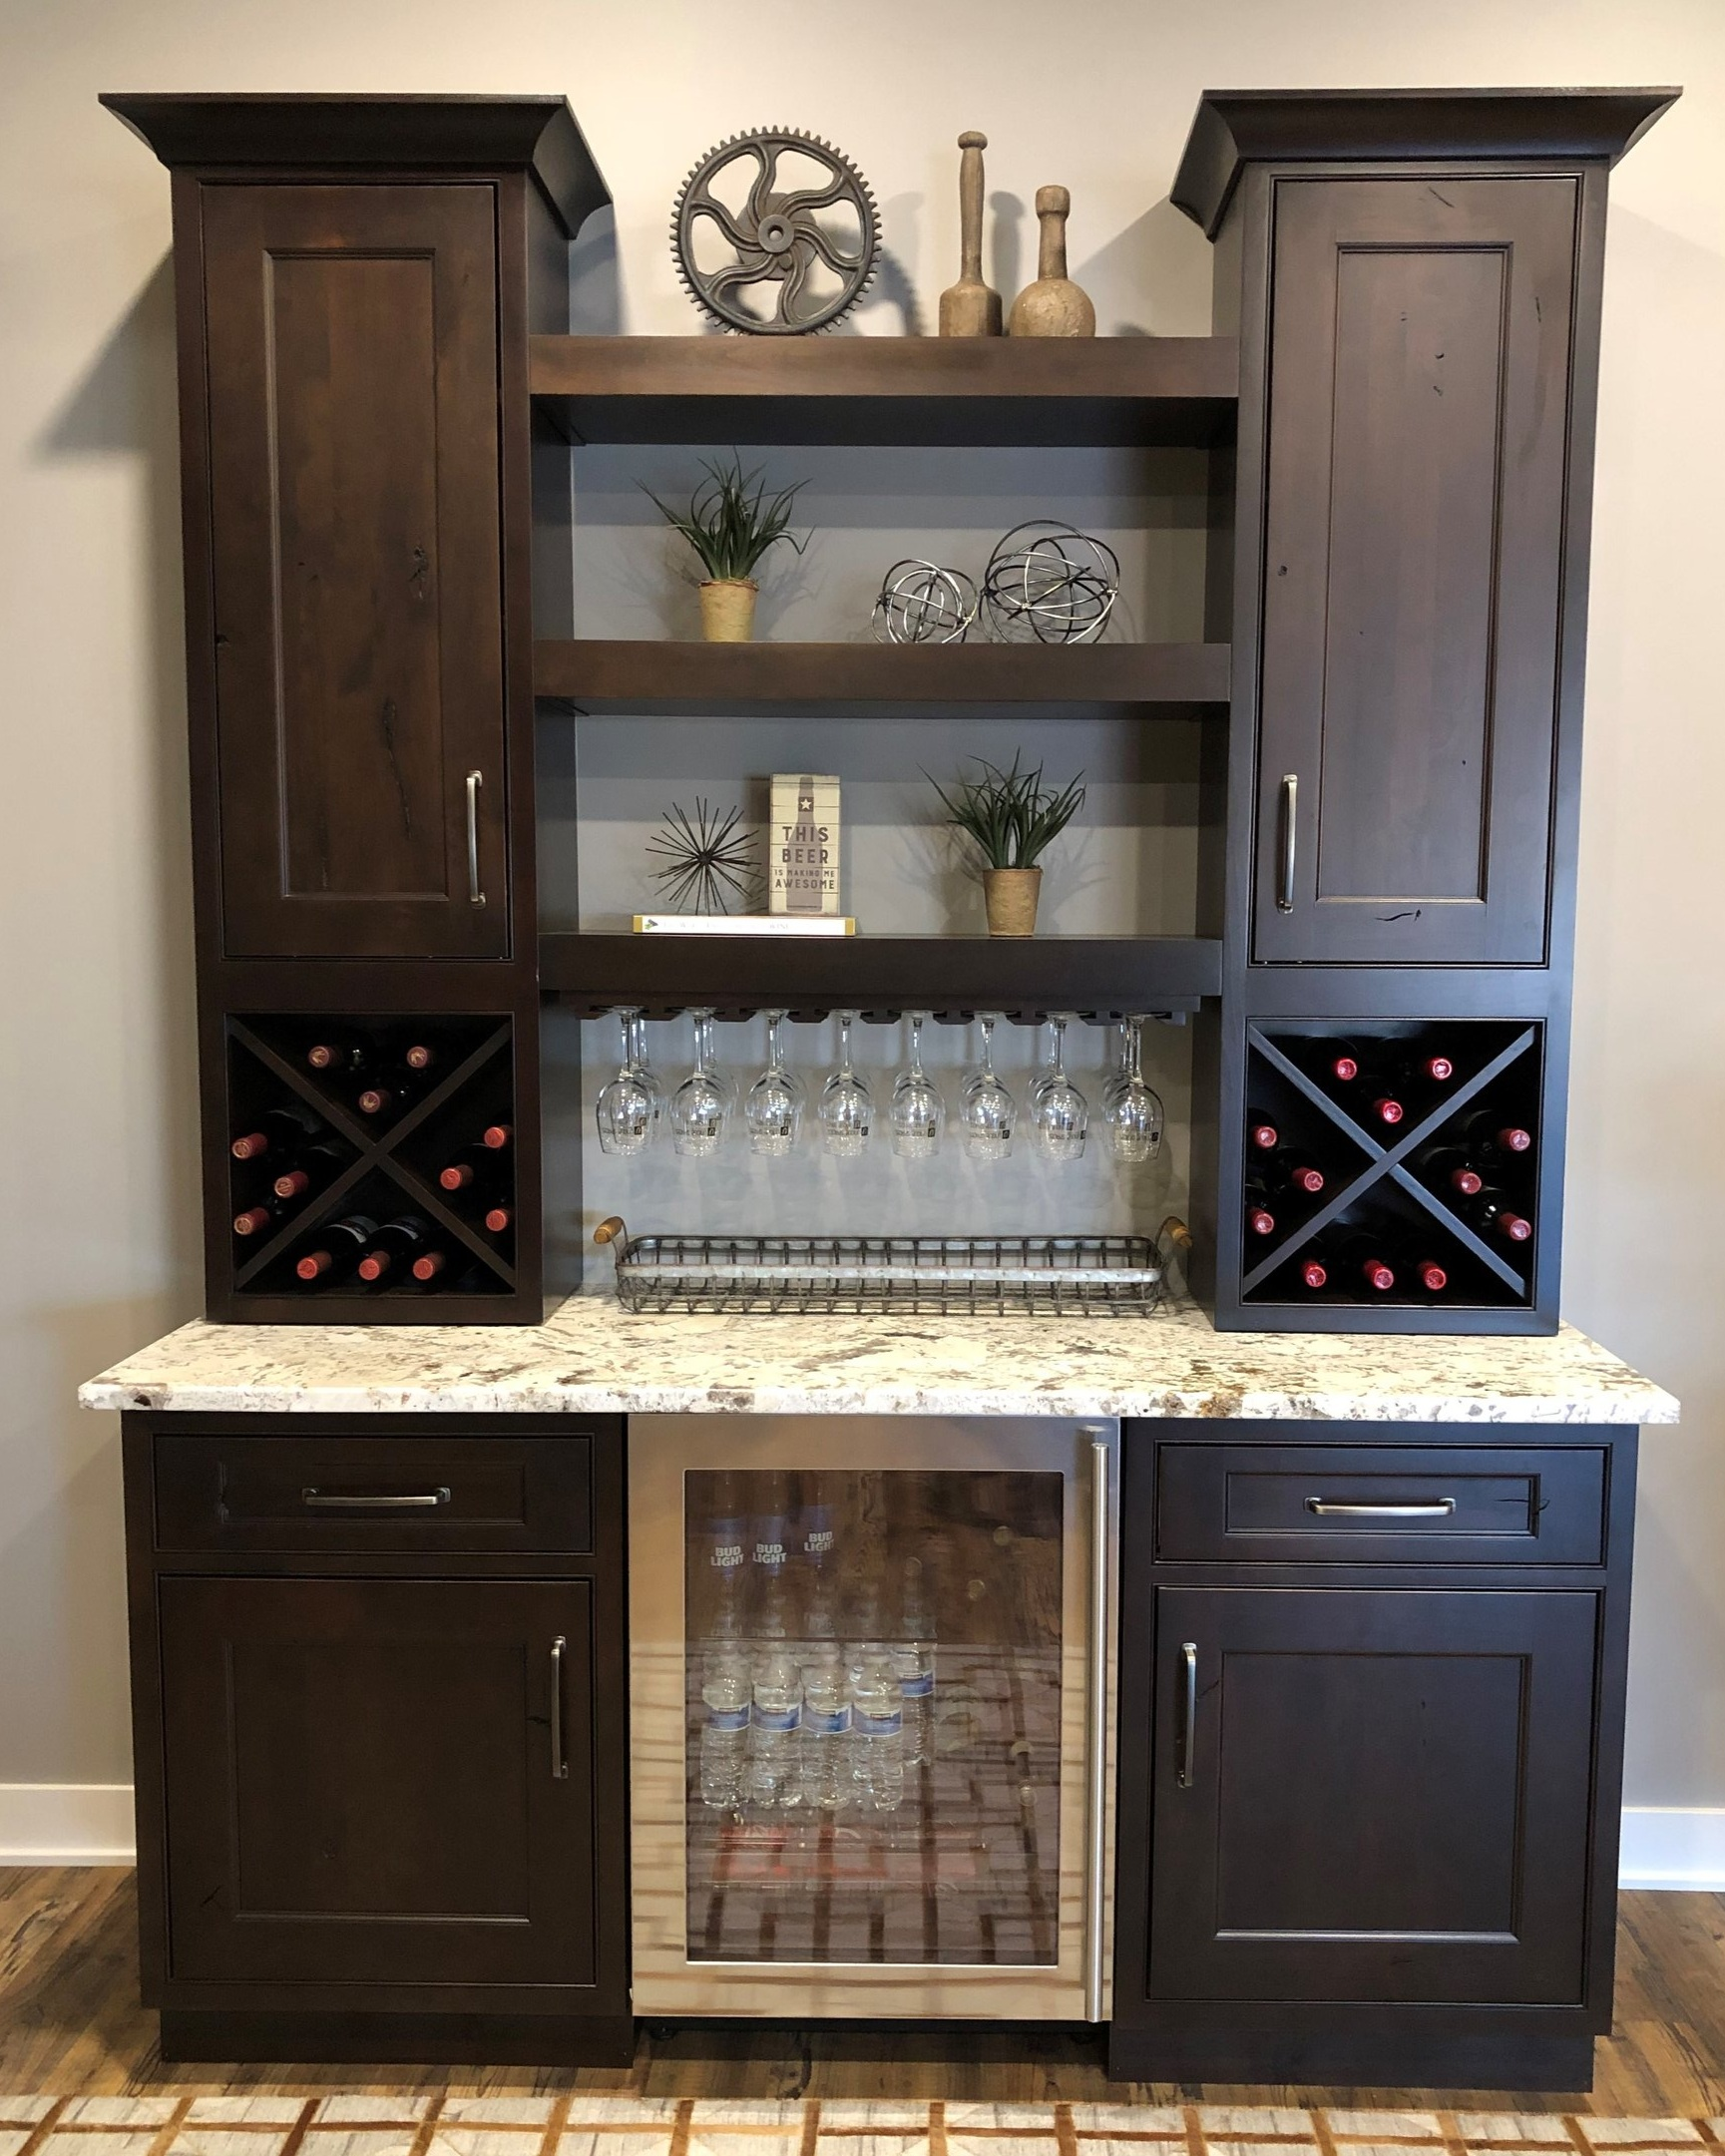 Bar - StarMark Cabinetry - Nottingham door style in Rustic Alder finished with Mocha stain with Ebony glaze